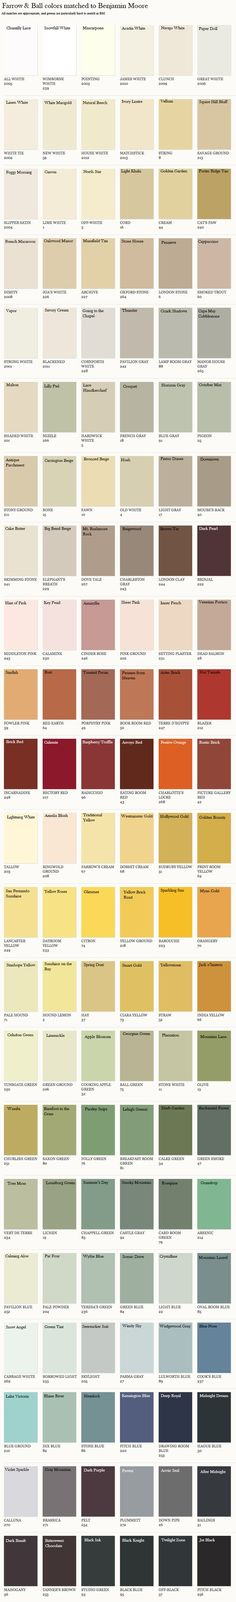 Farrow & Ball paint colors matched to Benjamin Moore colors | Farrow and Ball Paint Colors | Benjamin Moore Paint Picks